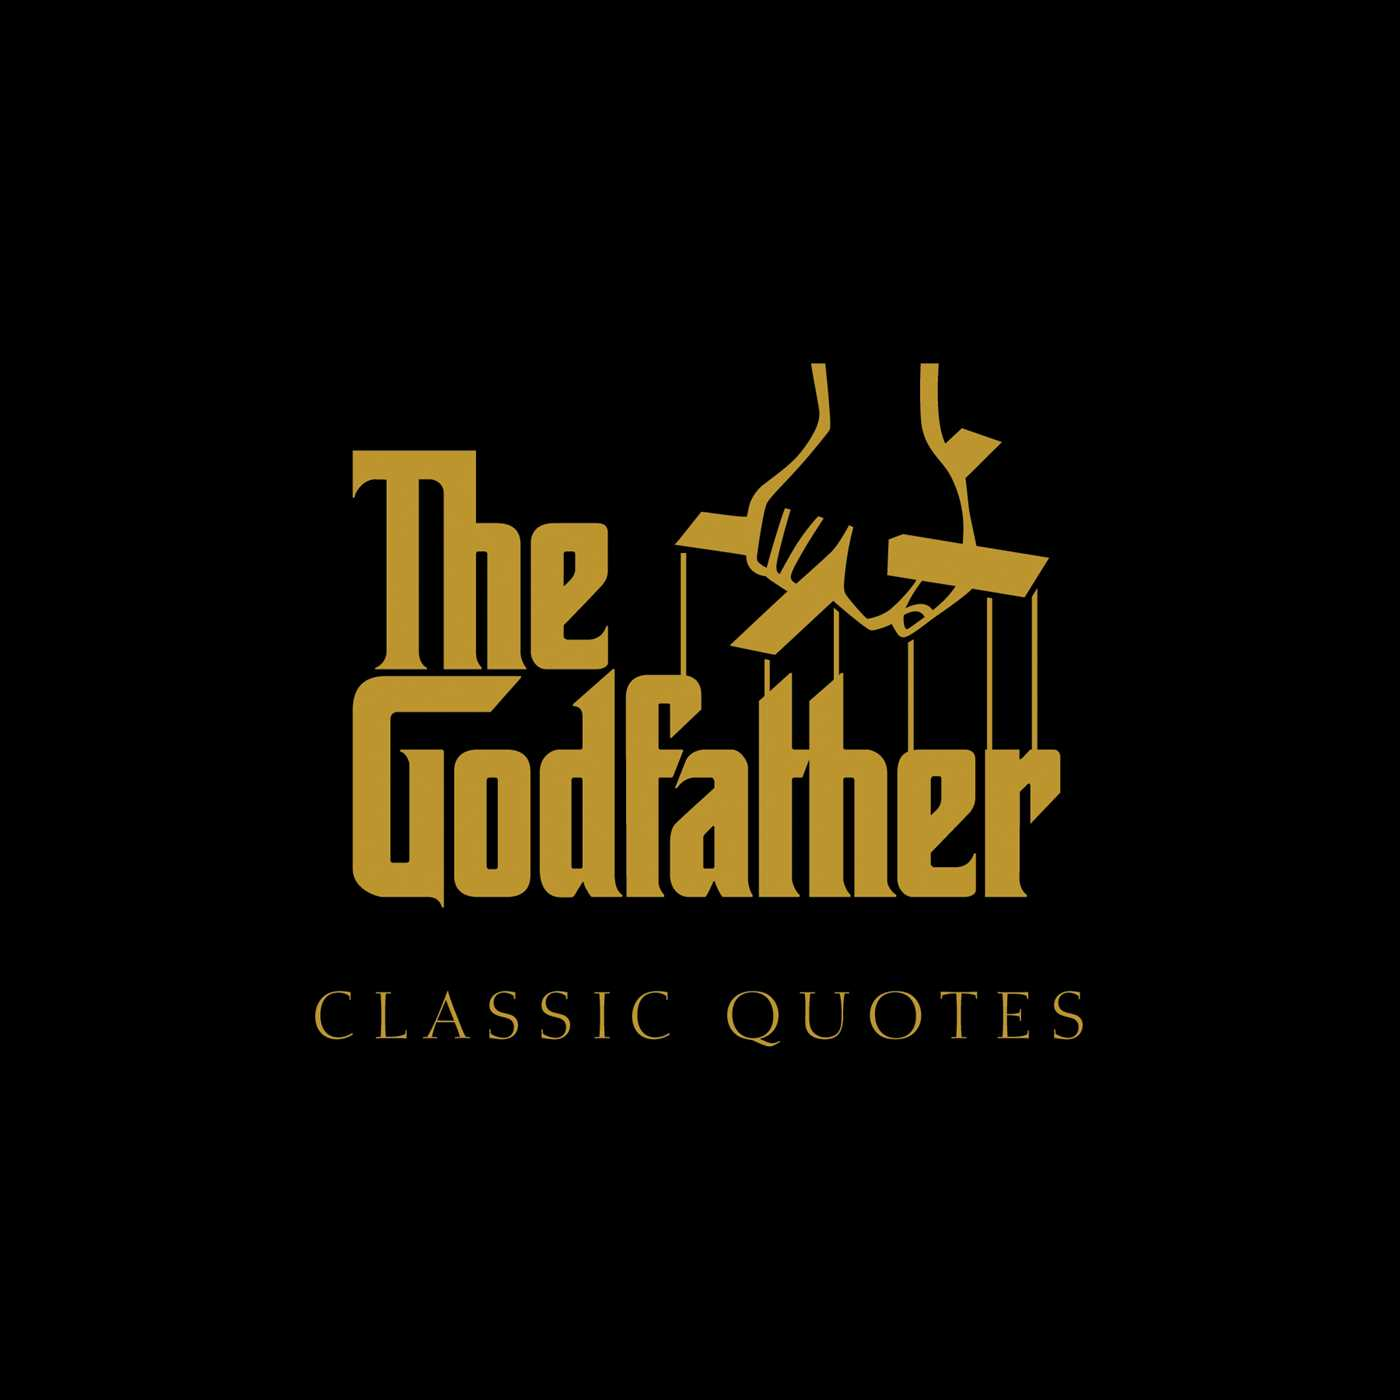 Classic Quotes Godfather Classic Quotes Ebookcarlo Devito  Official